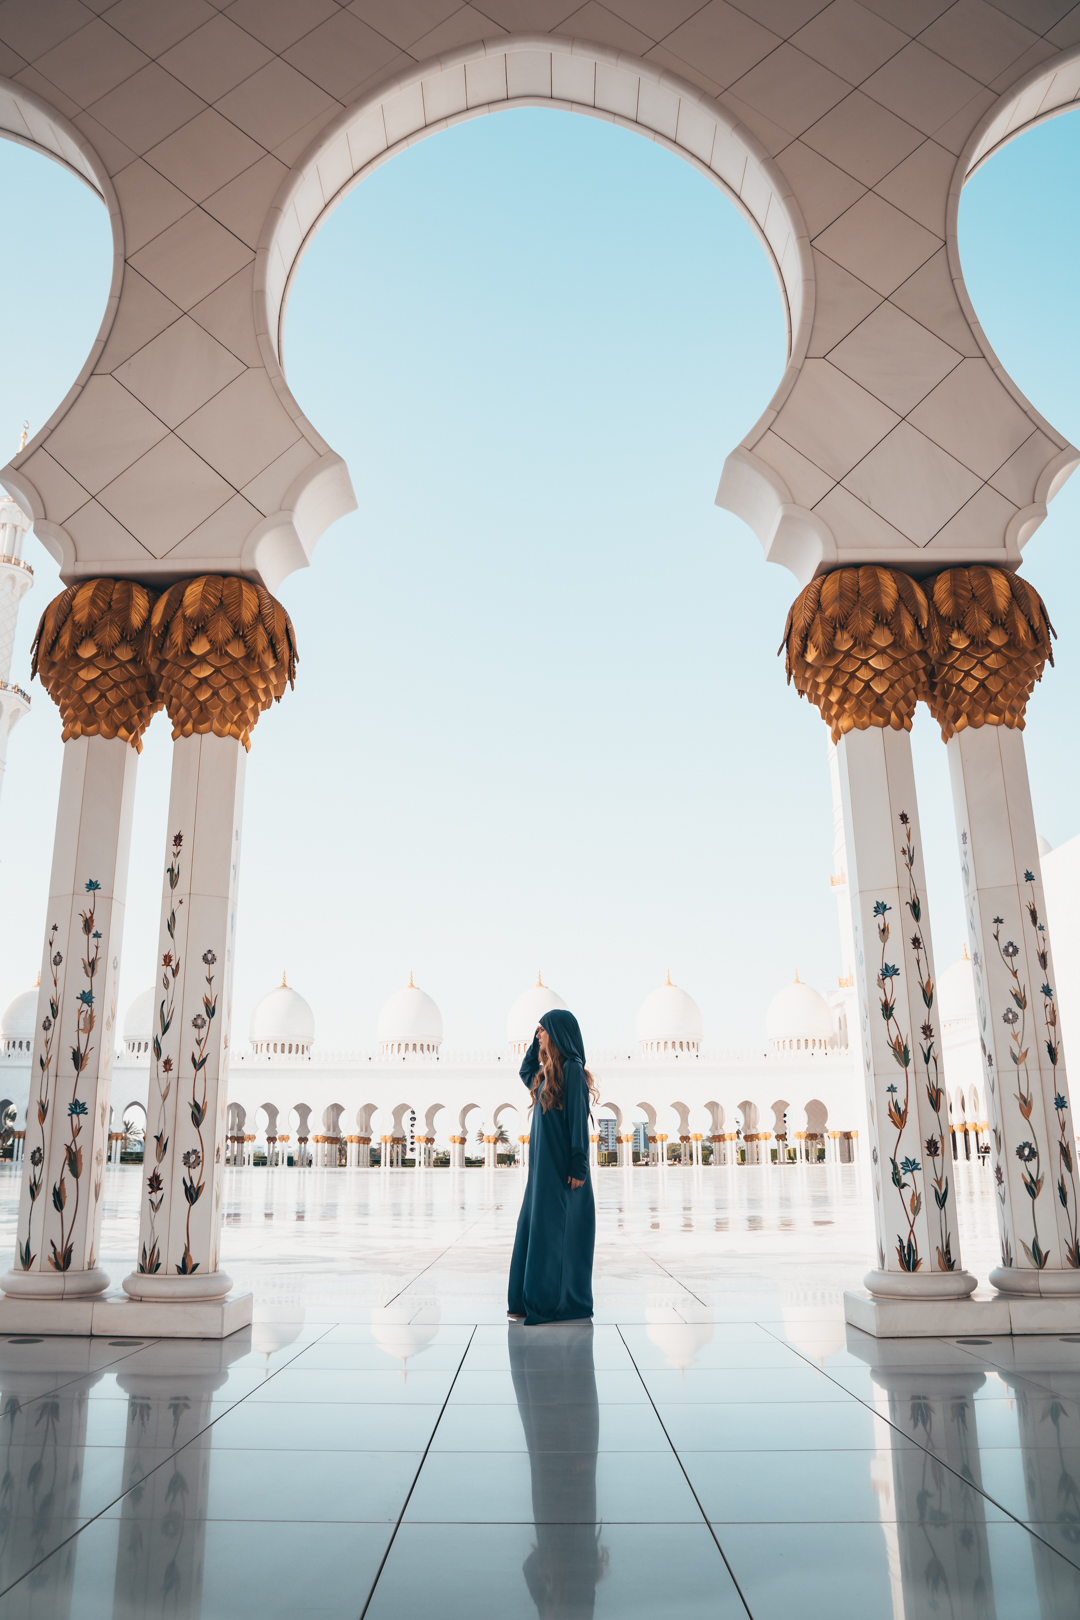 Photograph of a woman with a blue dress standing between two pillars in a white mosque with very unique and beautiful handcrafted architecture. This photograph was taken by Oliver Sjöström, ollivves, in Sheikh Zayed Mosque, Abu Dhabi, United Arab Emirates, 2018.